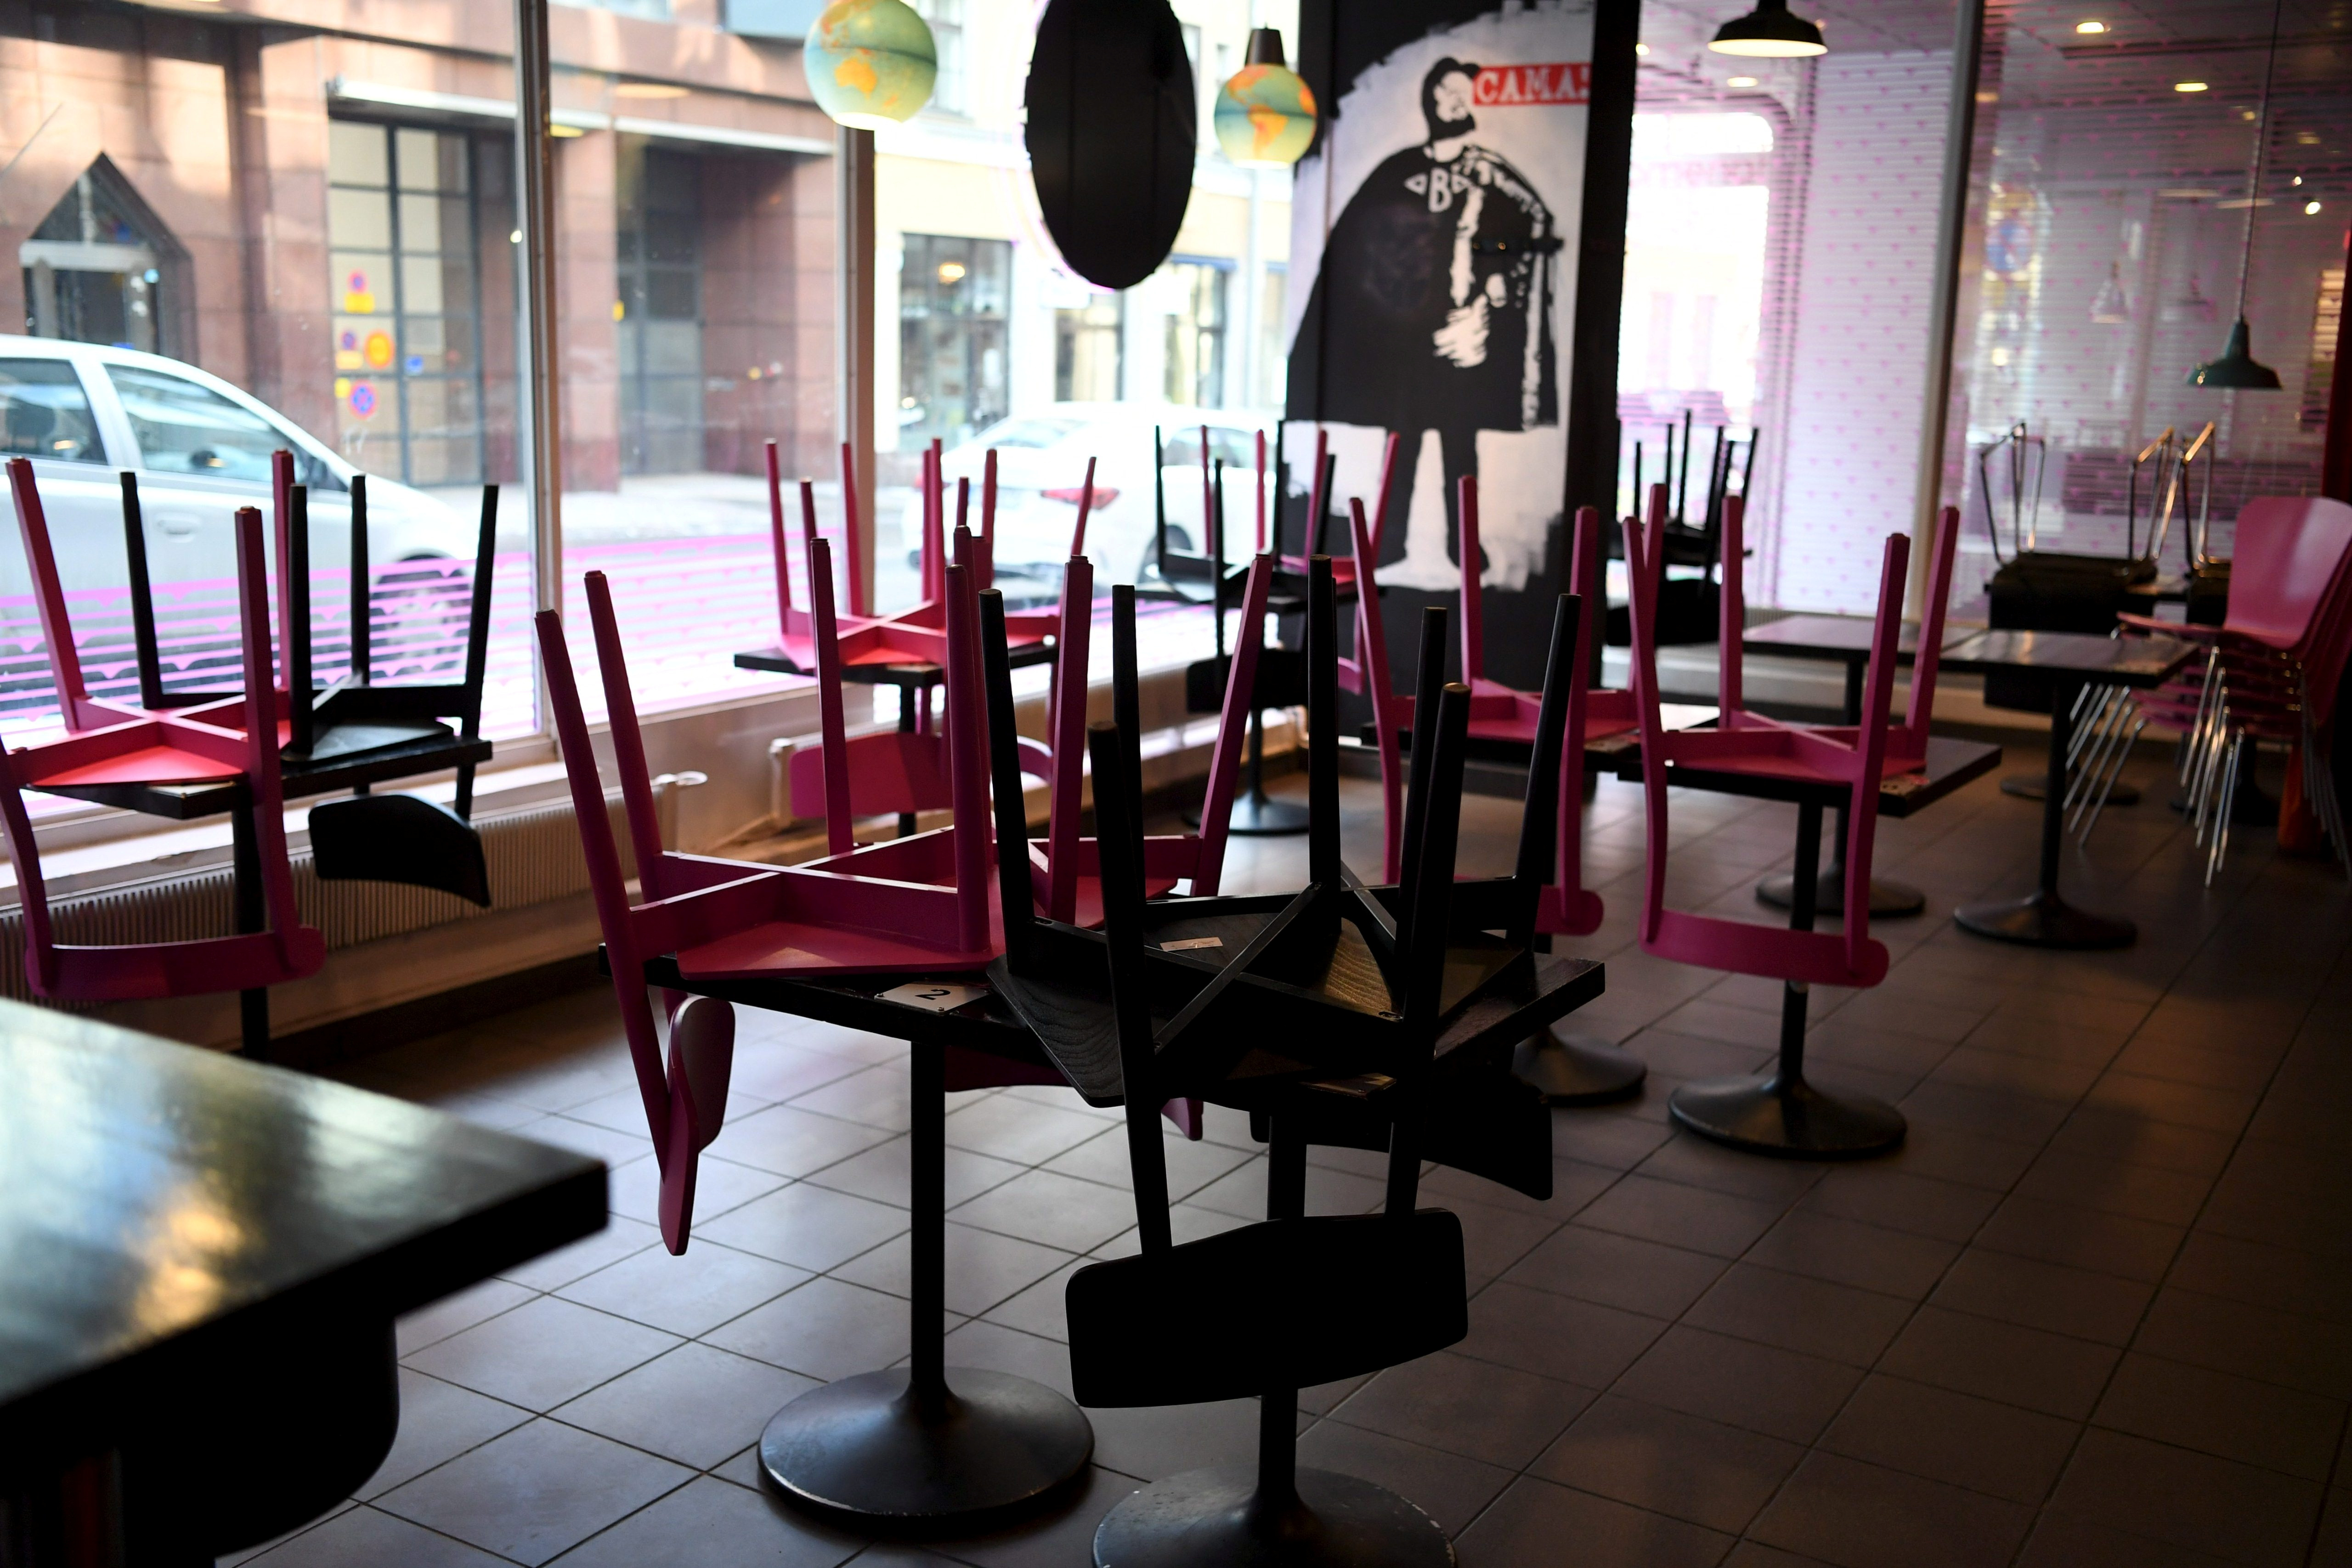 The dining area of the Naughty BRGR is closed while the restaurant serves only takeaway food, as the three weeks long partial lockdown of the restaurants starts due to the coronavirus disease (COVID-19) pandemic, in Helsinki, Finland March 8, 2021. Lehtikuva/Antti Aimo-Koivisto via REUTERS